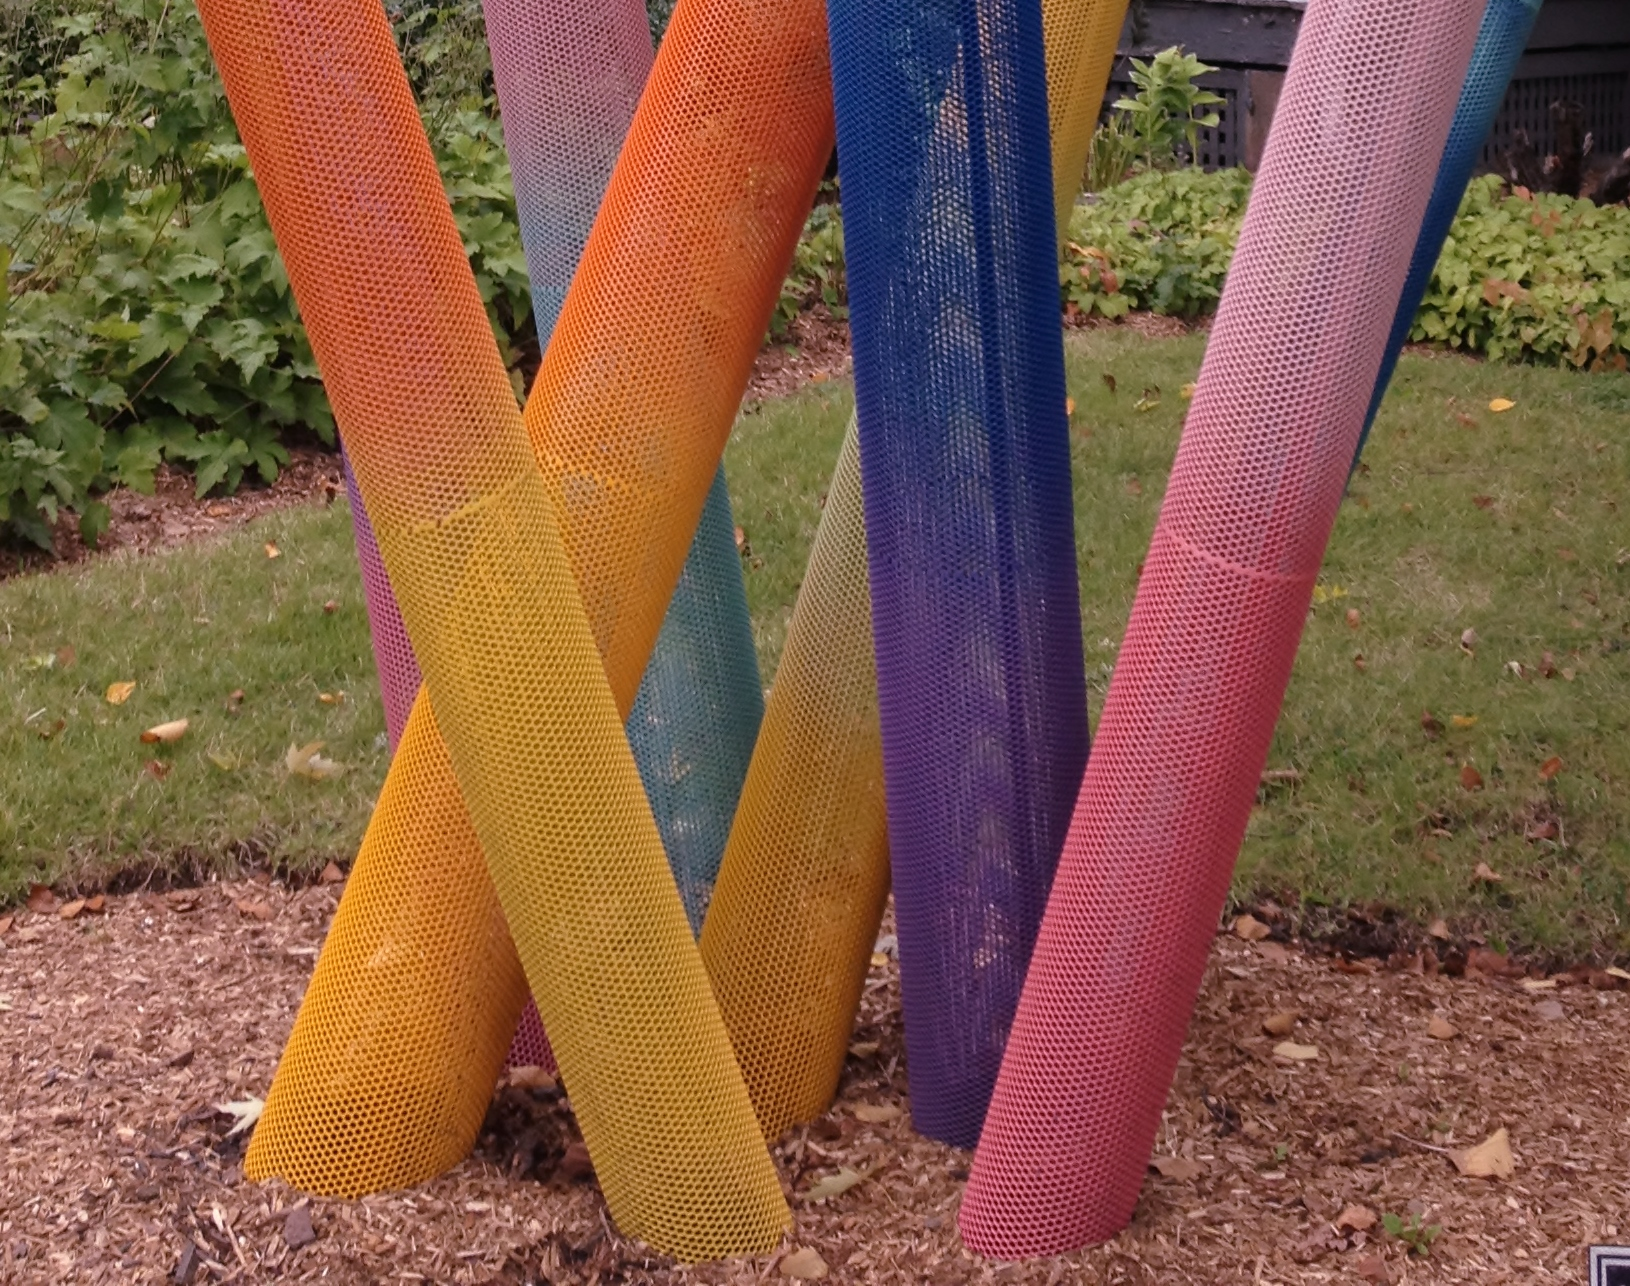 Woodstock-Colorfields-Sculpture.jpg